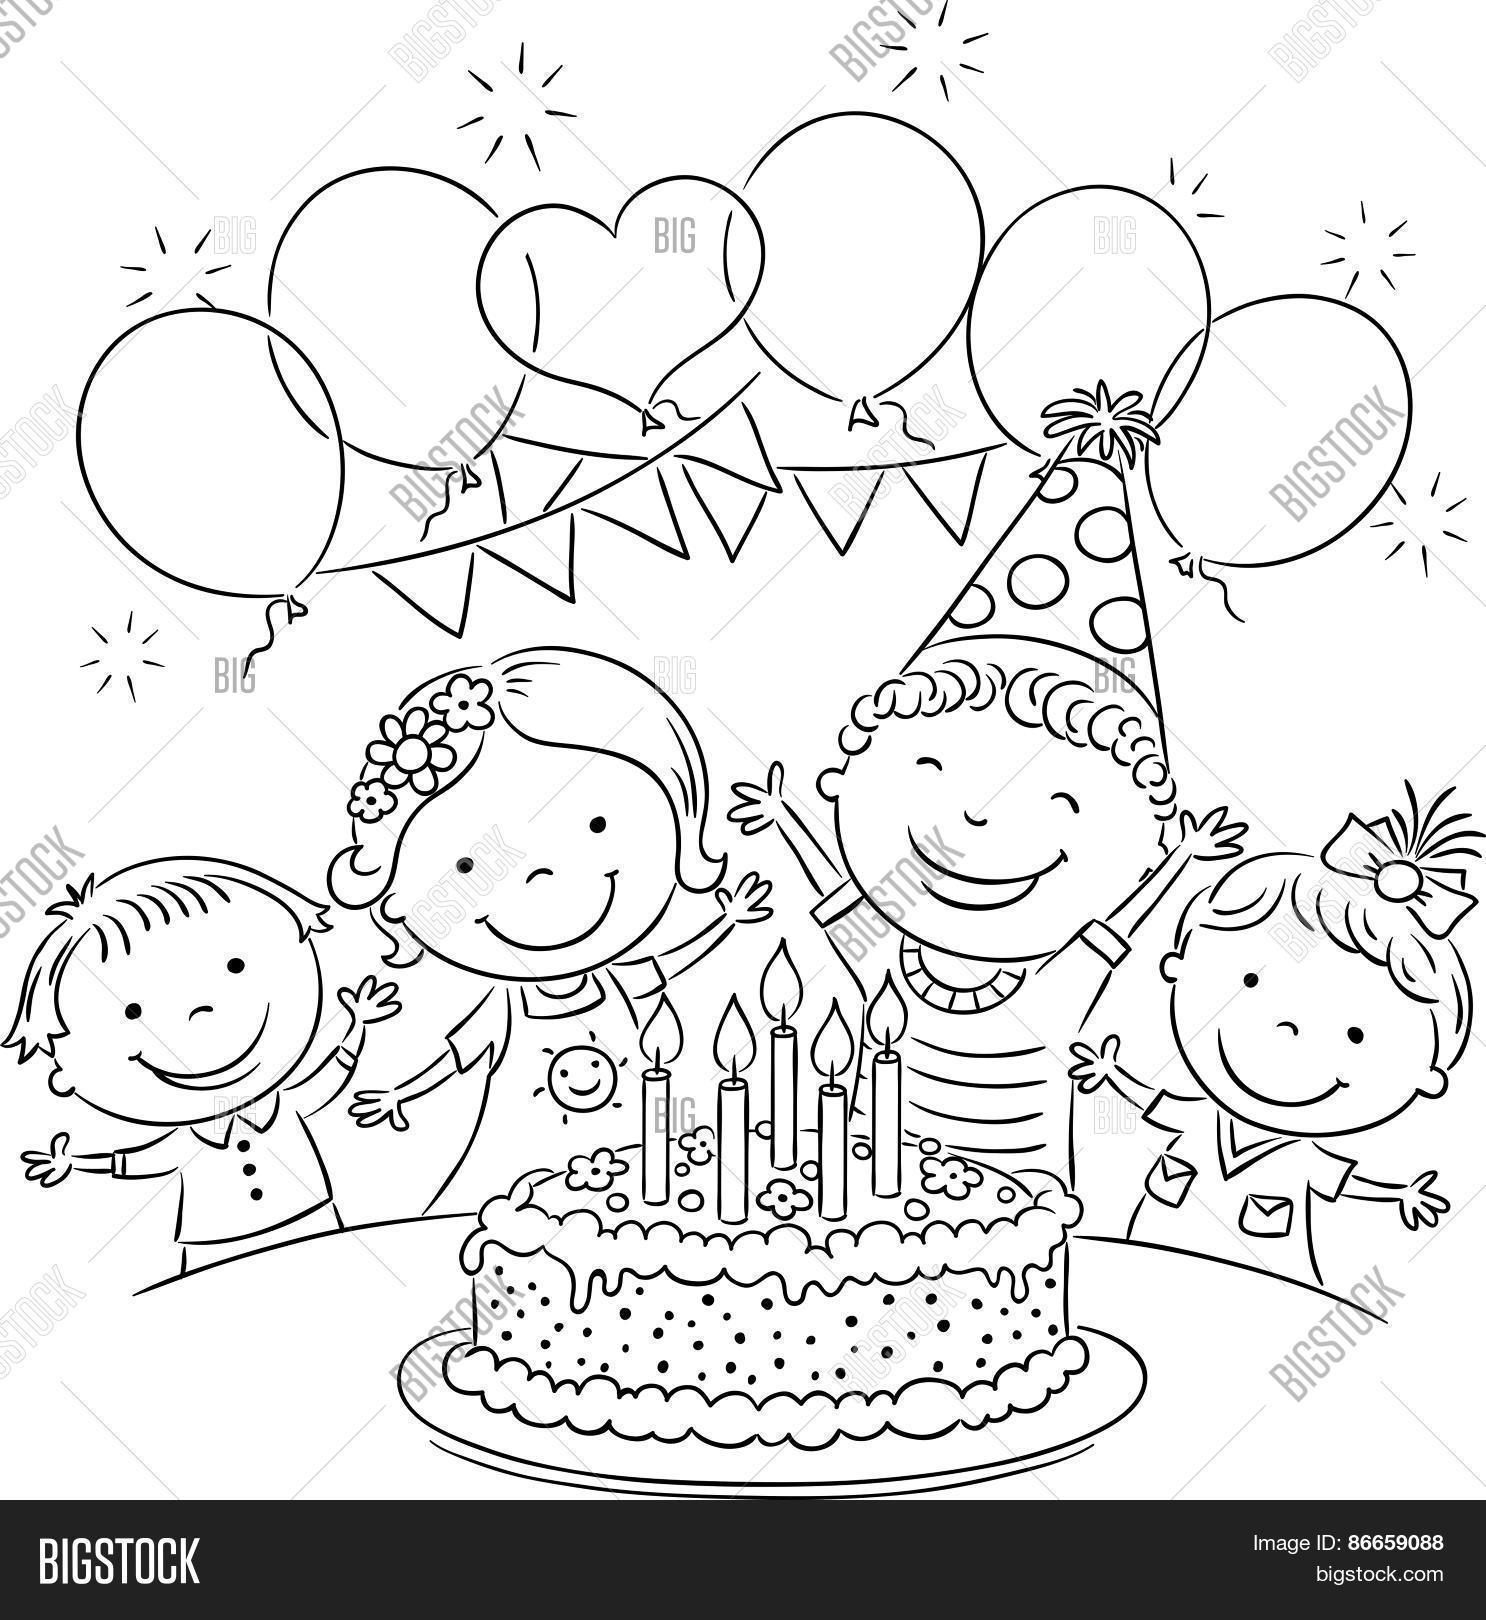 picture of birthday party scene ; birthday-party-scene-for-drawing-kids-birthday-party-outline-stock-vector-stock-photos-bigstock